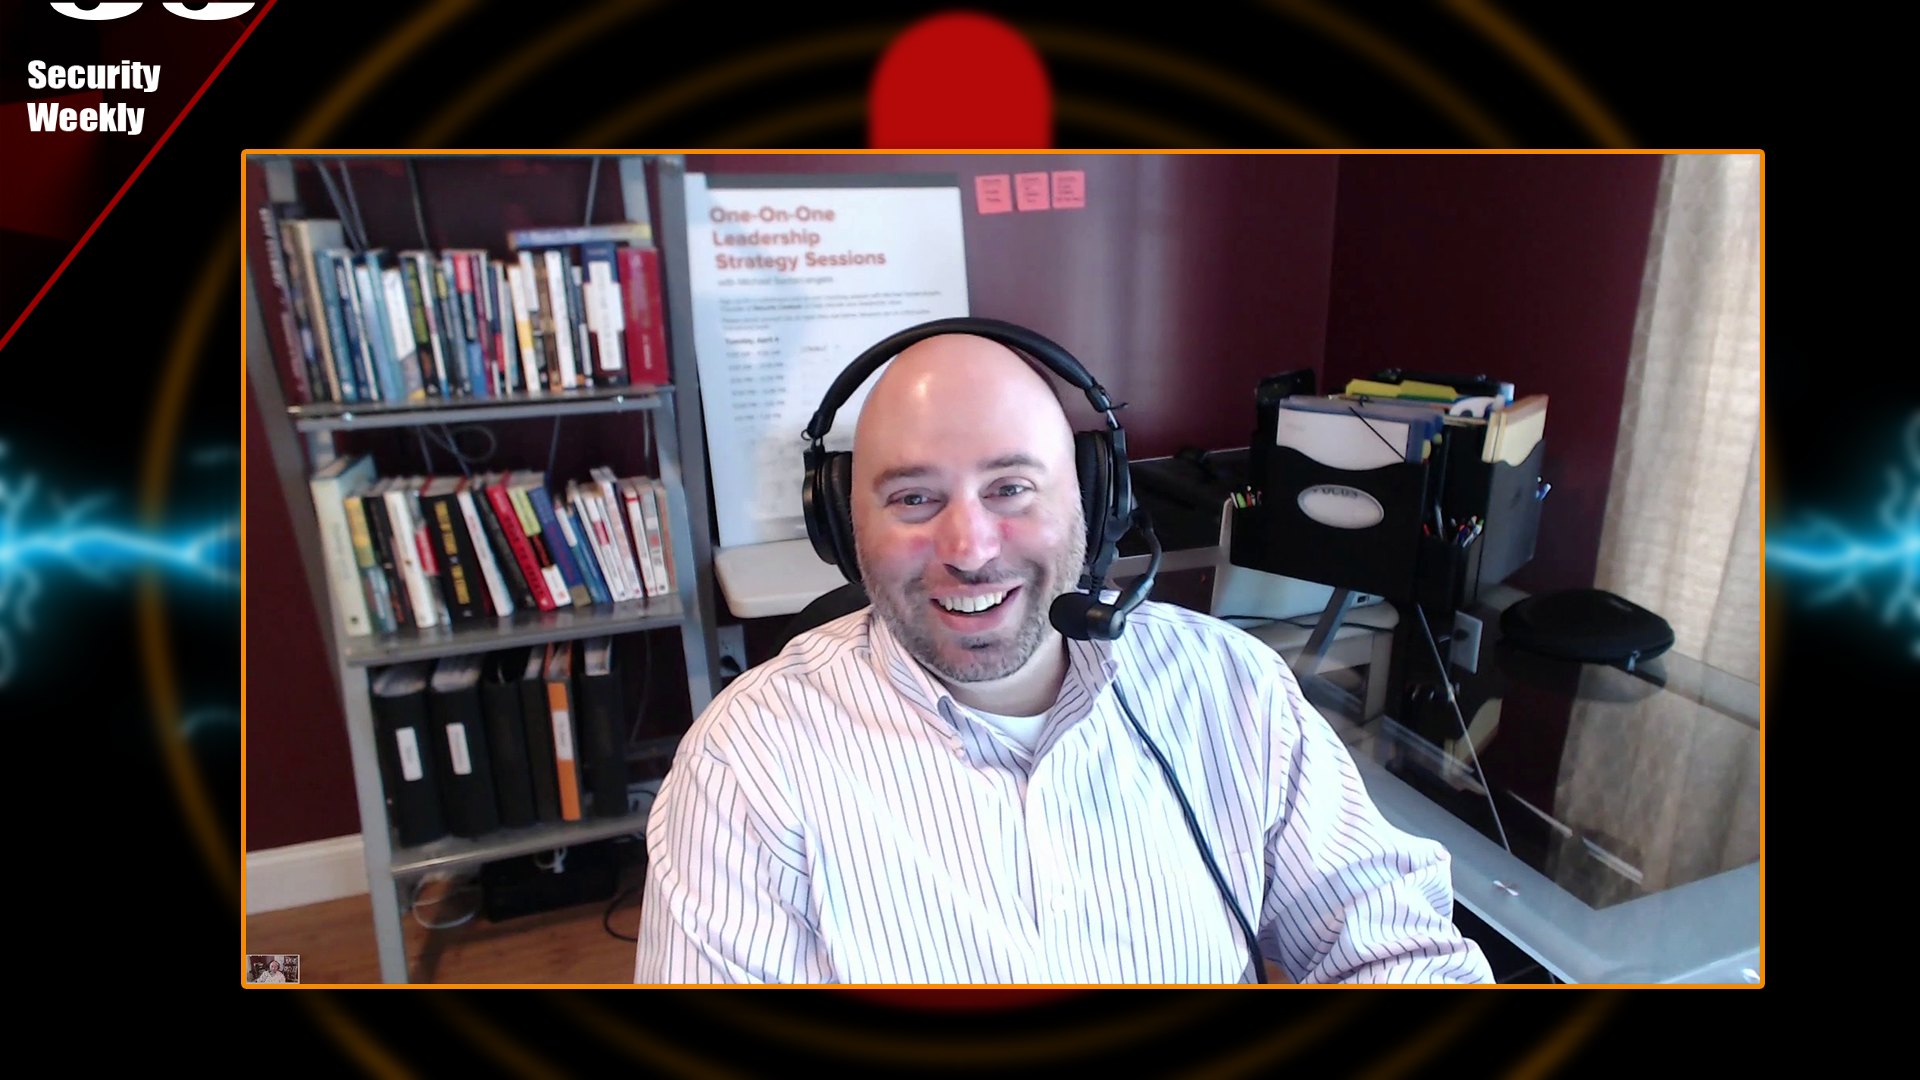 Artwork for News - Startup Security Weekly #41